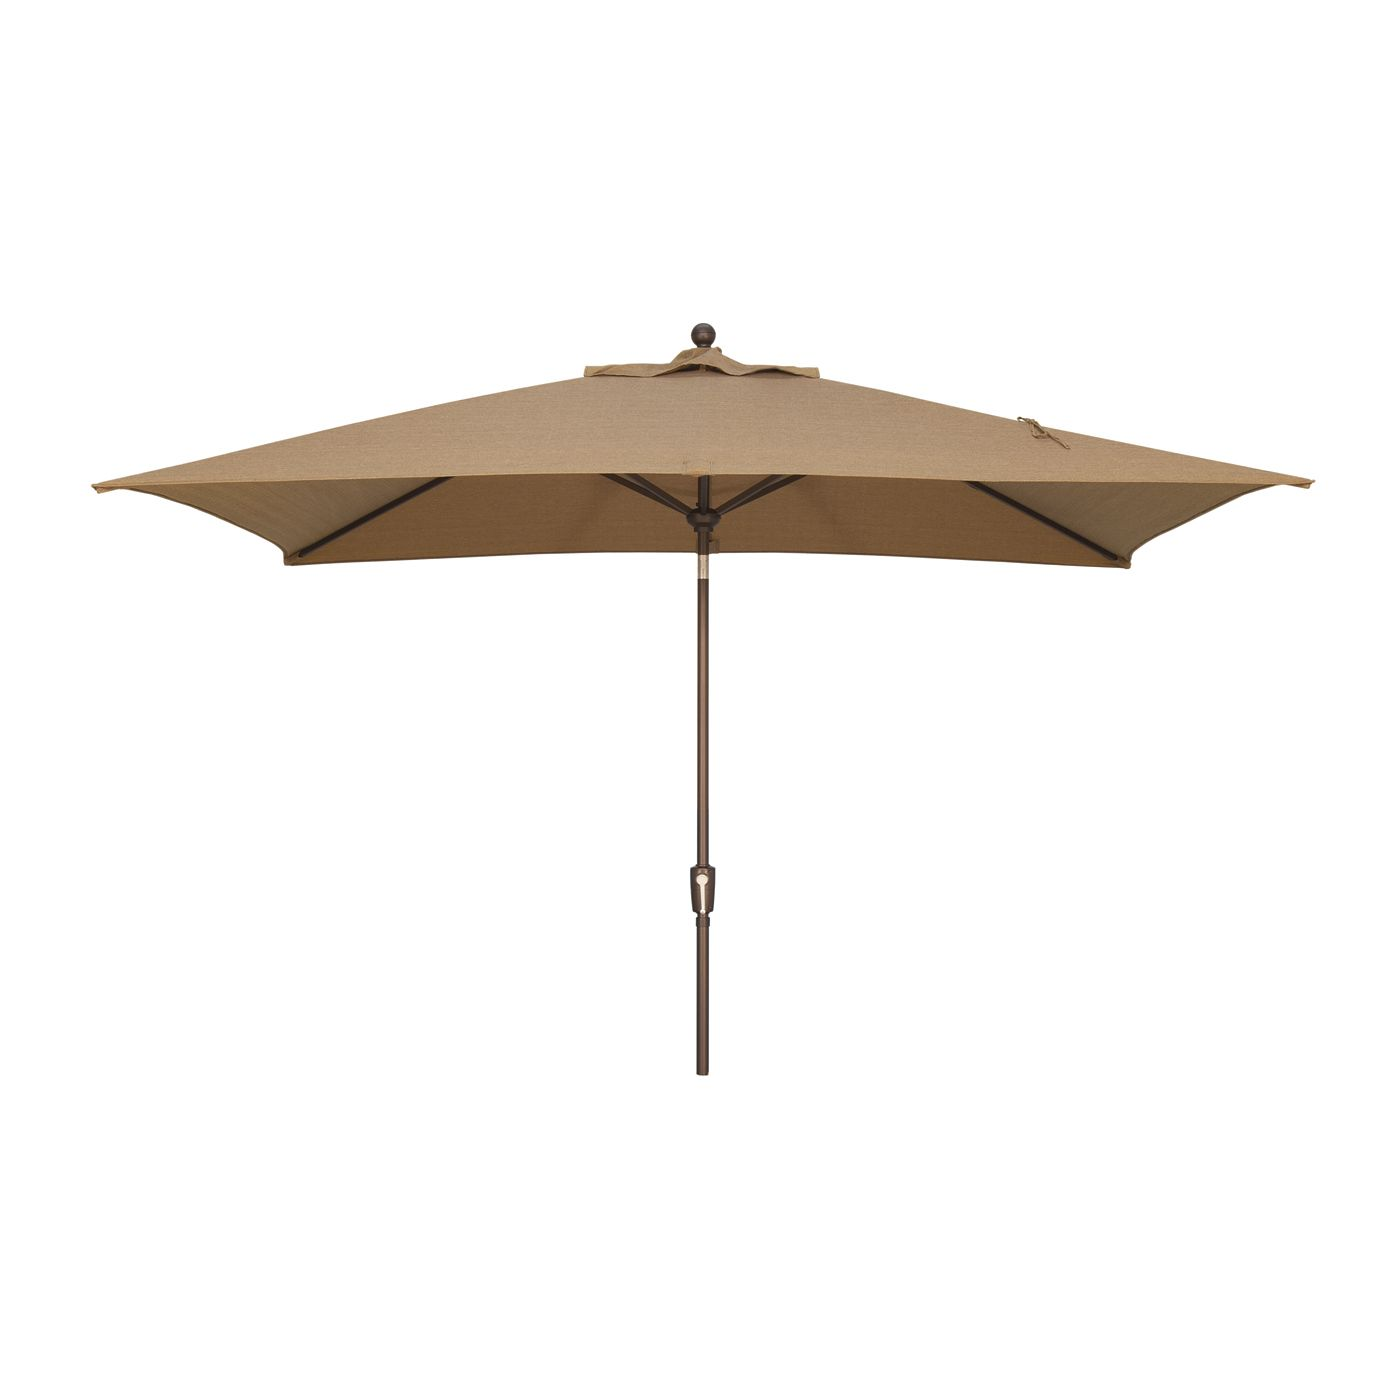 Wanda Tech Upr830xa54 Primo 6 5 Ft X 10 Ft Sunbrella Umbrella Sunbrella Umbrella Umbrella Patio Umbrella